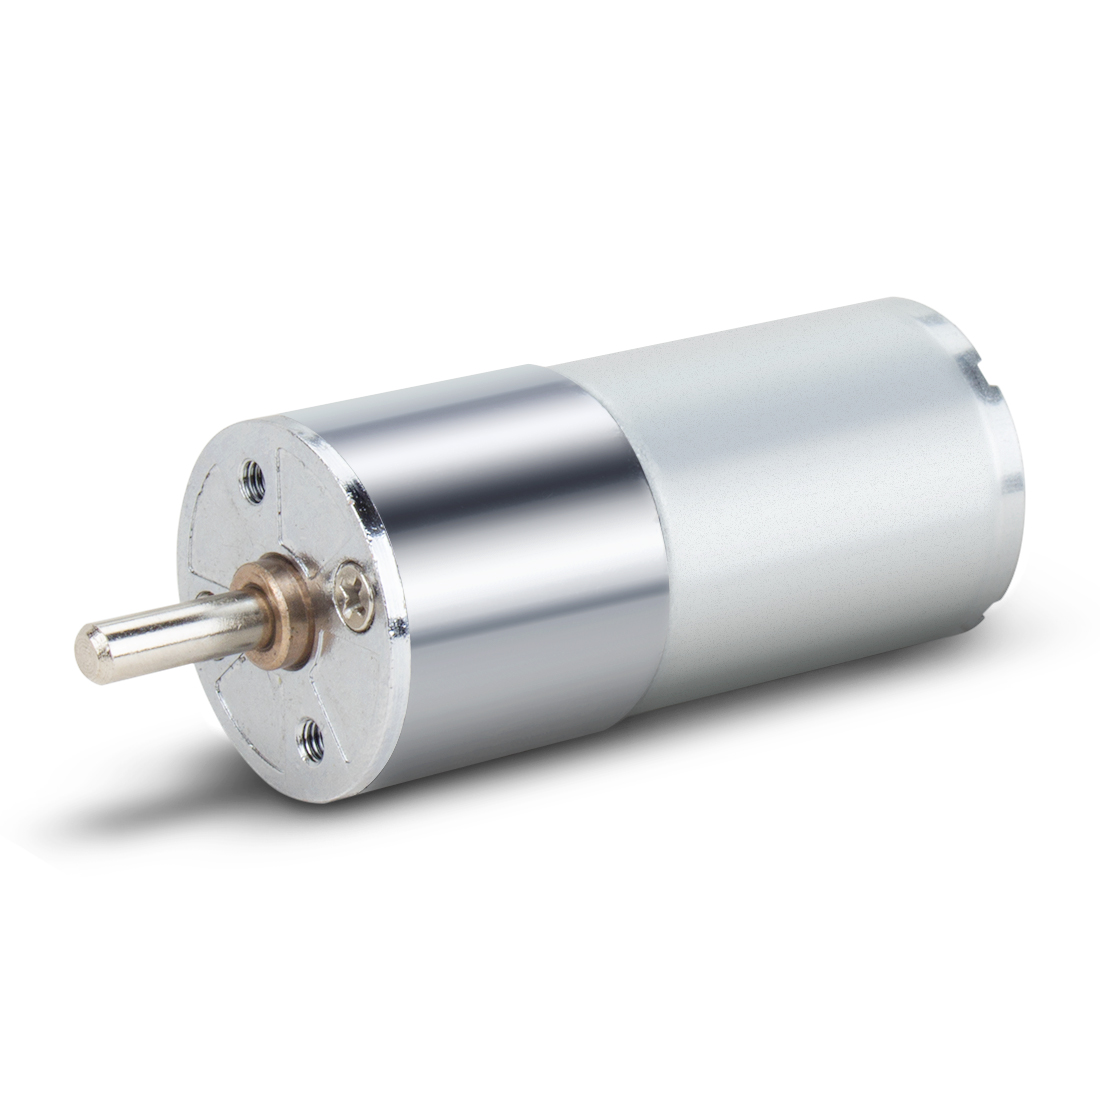 ZGA25RP DC 12V 60RPM Micro Gear Box Motor Speed Reduction Centric Output Shaft